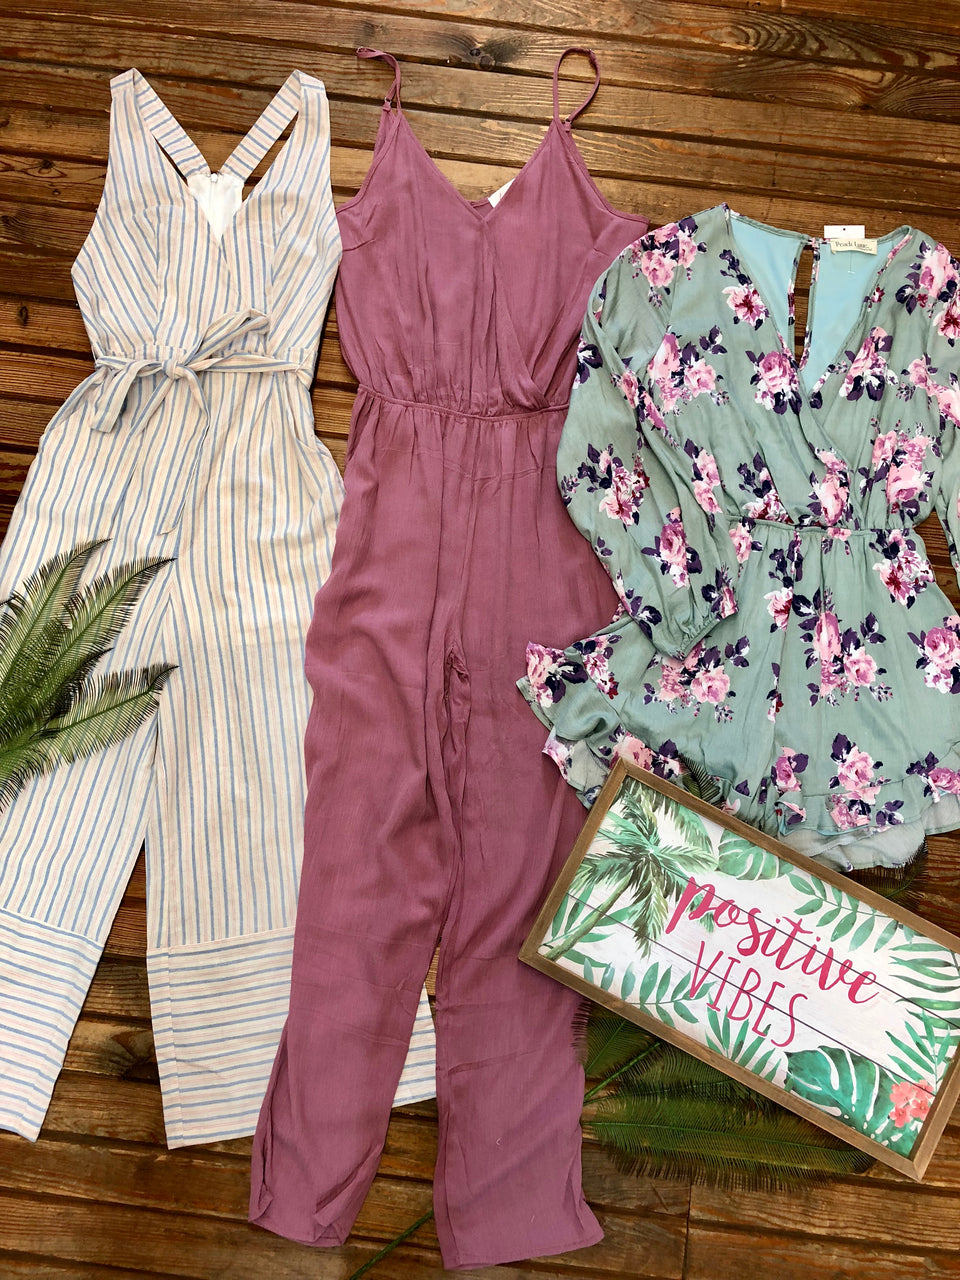 Let's talk rompers!